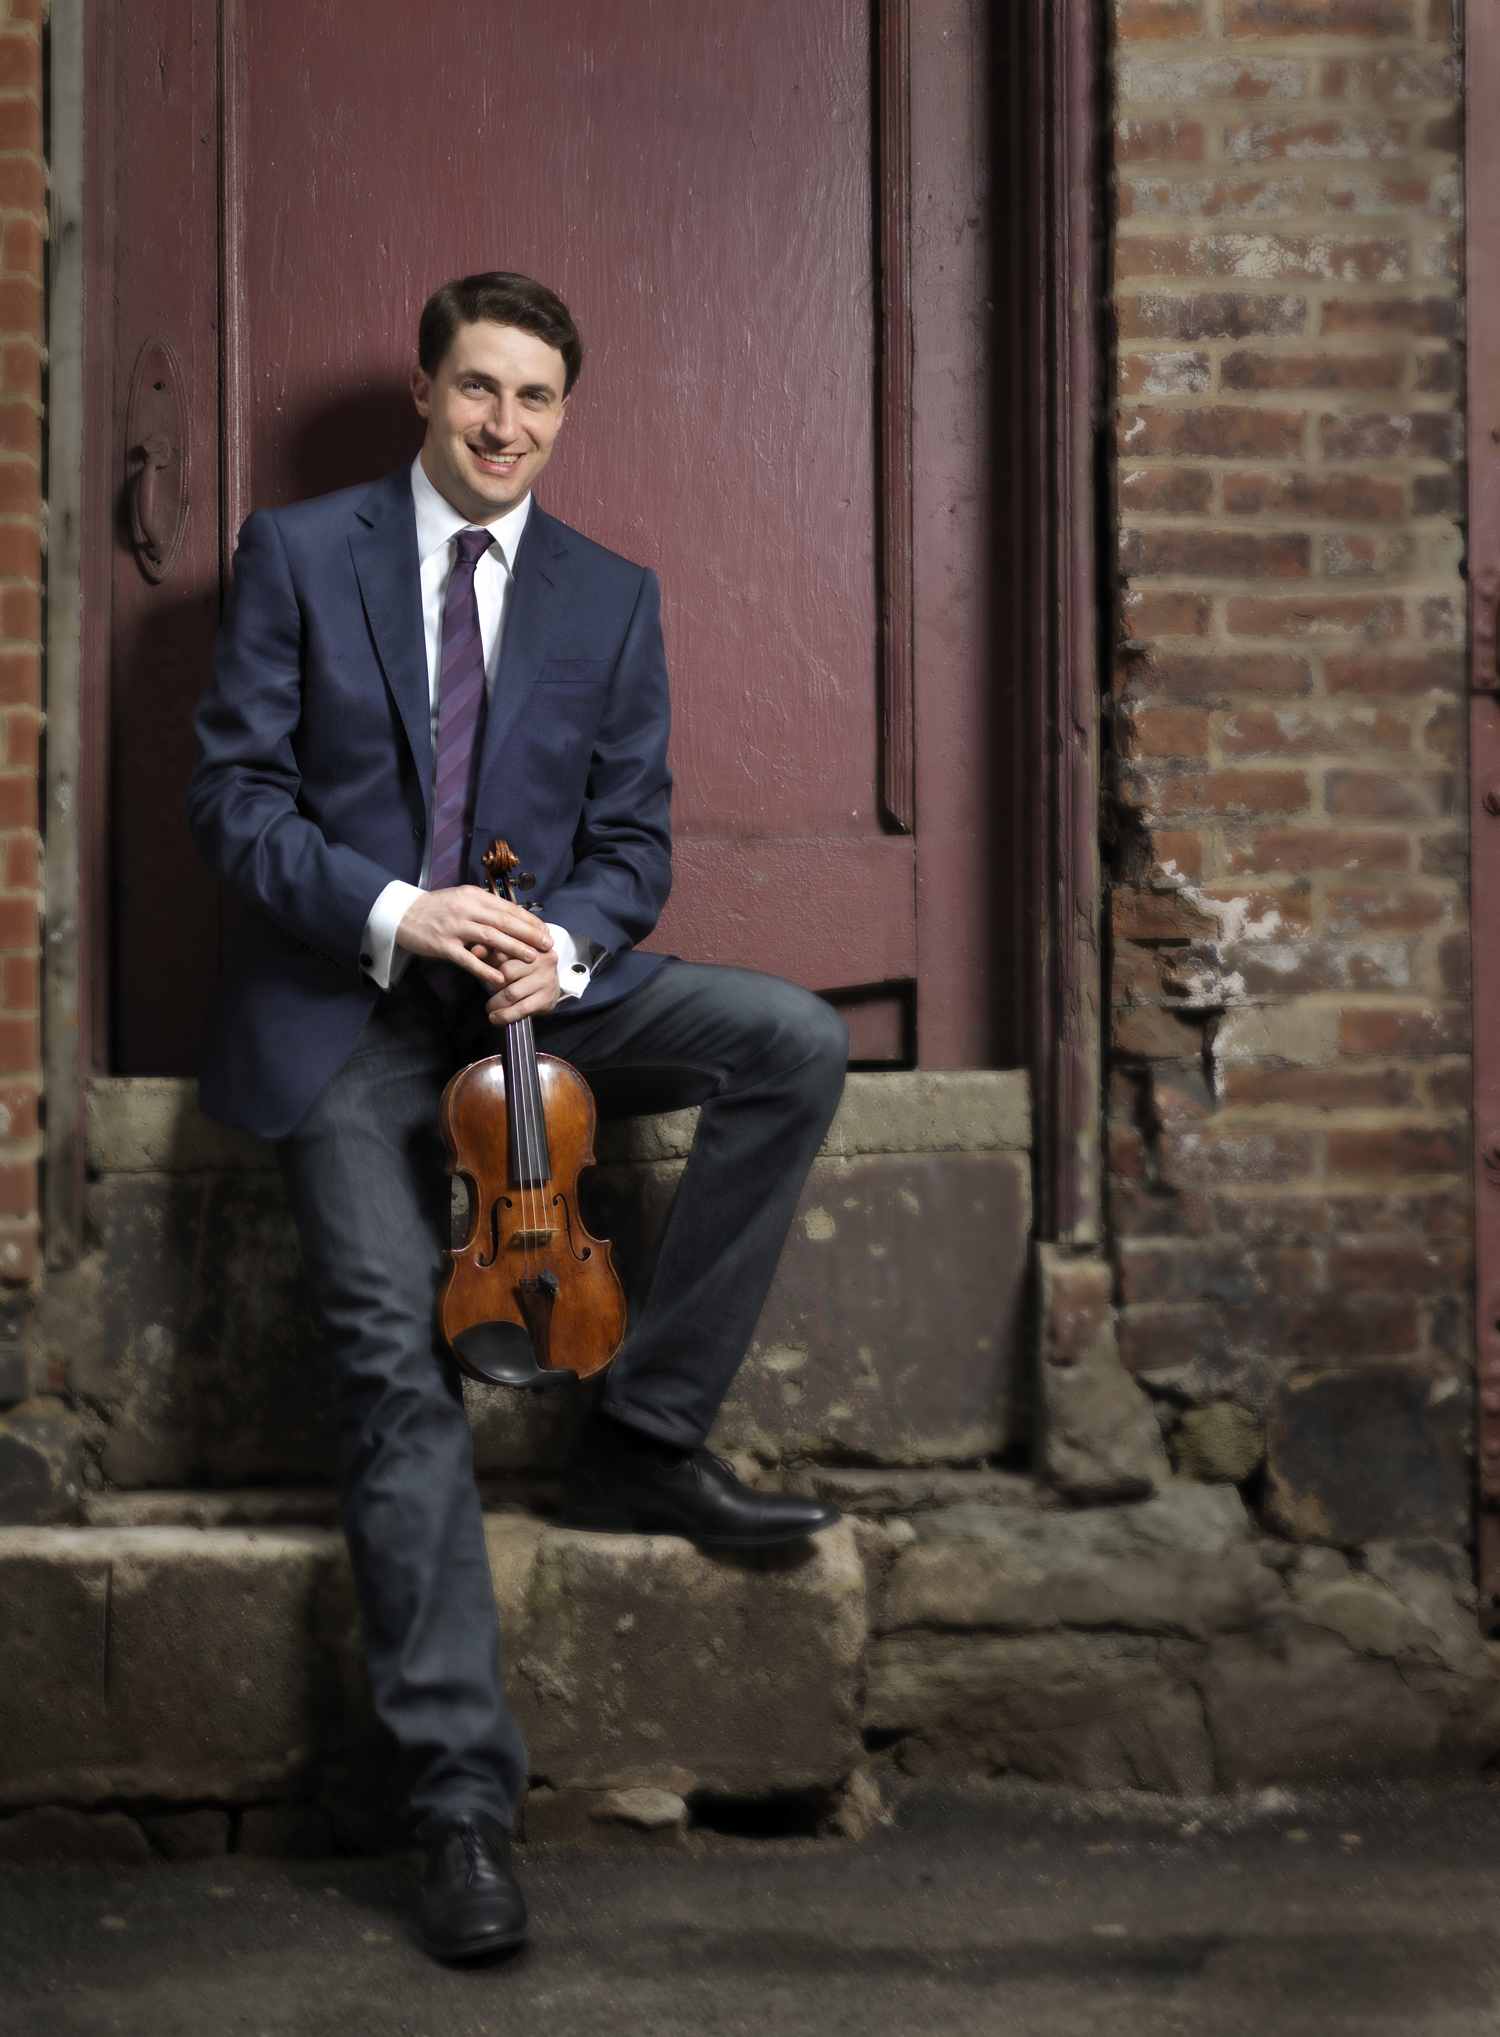 Play At American Girl: Pittsburgh Symphony Orchestra Duo To Play At Children's